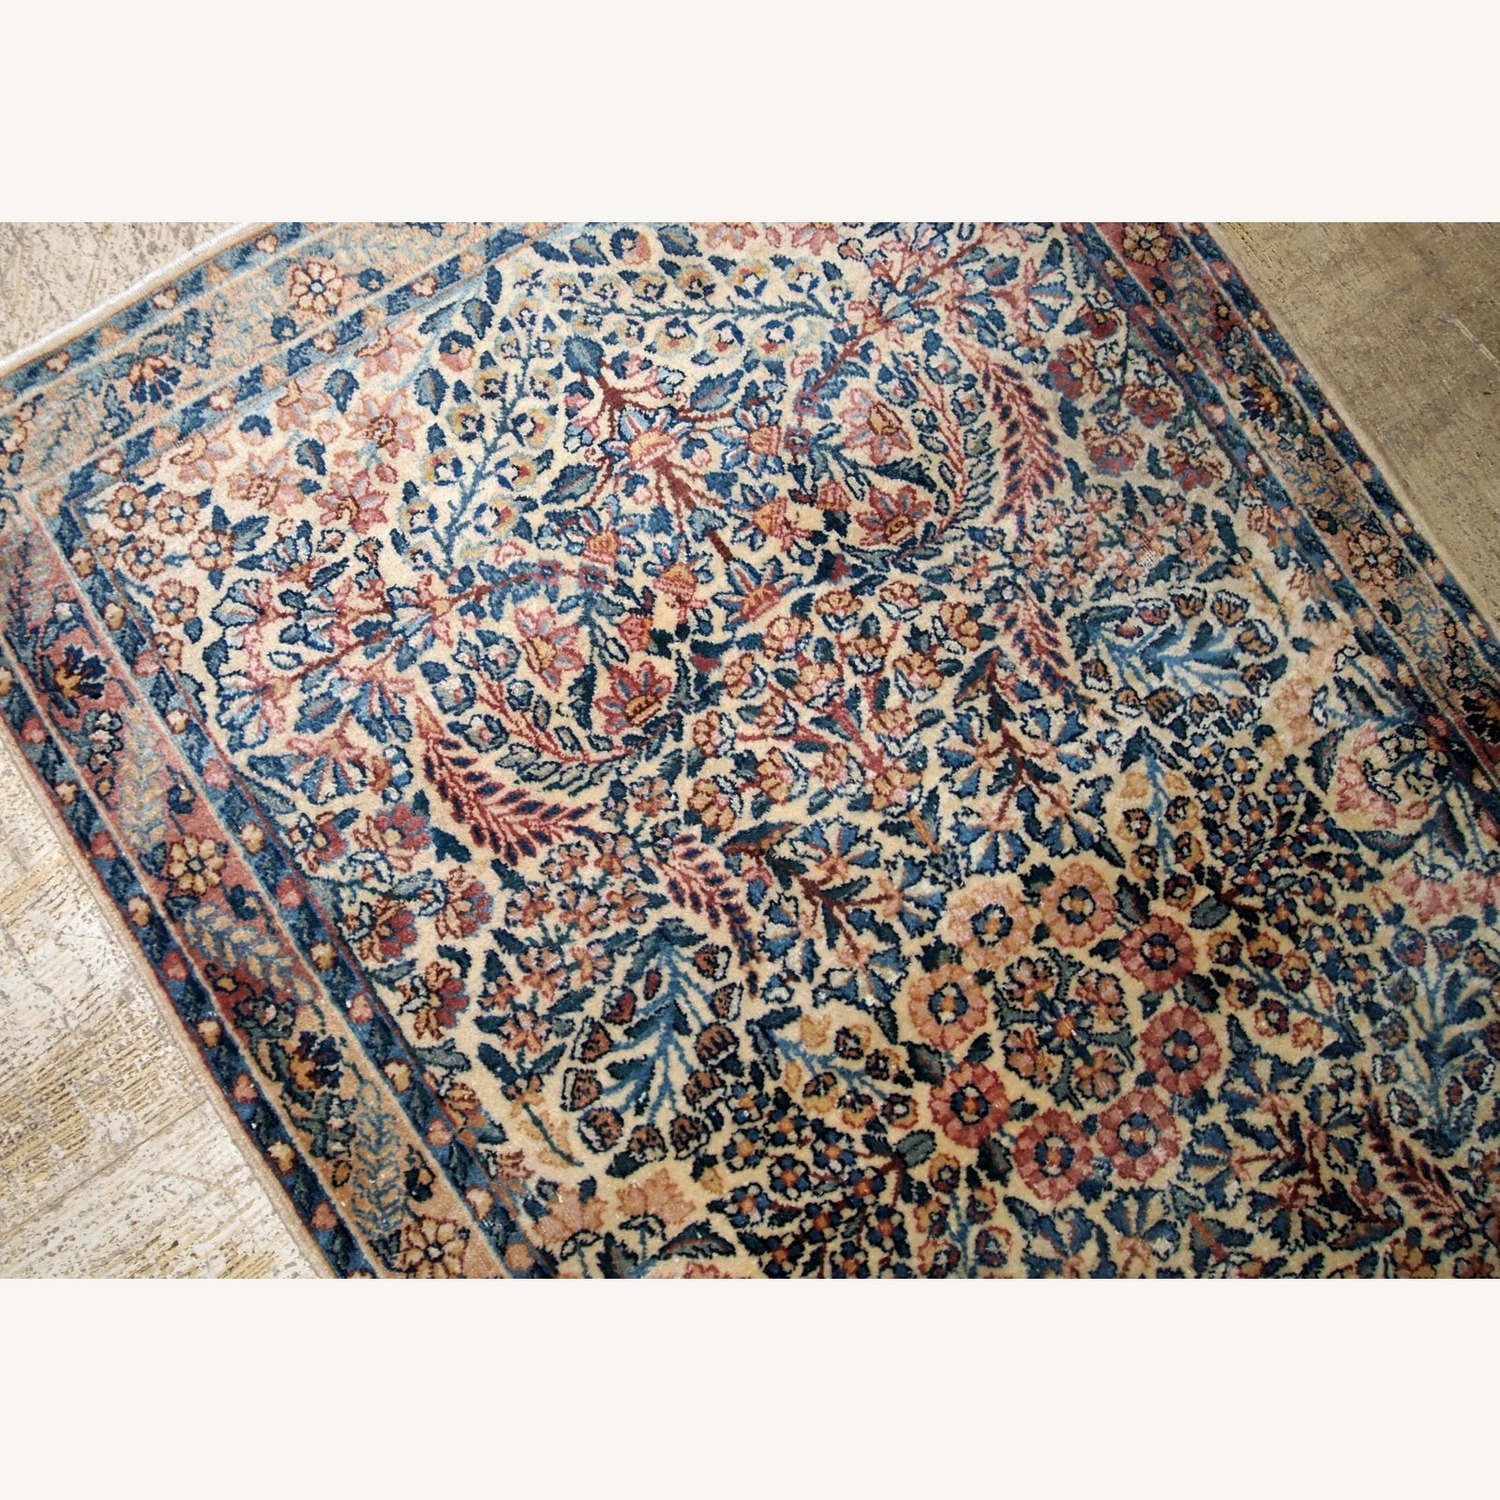 Handmade Antique Persian Kerman Rug - image-7